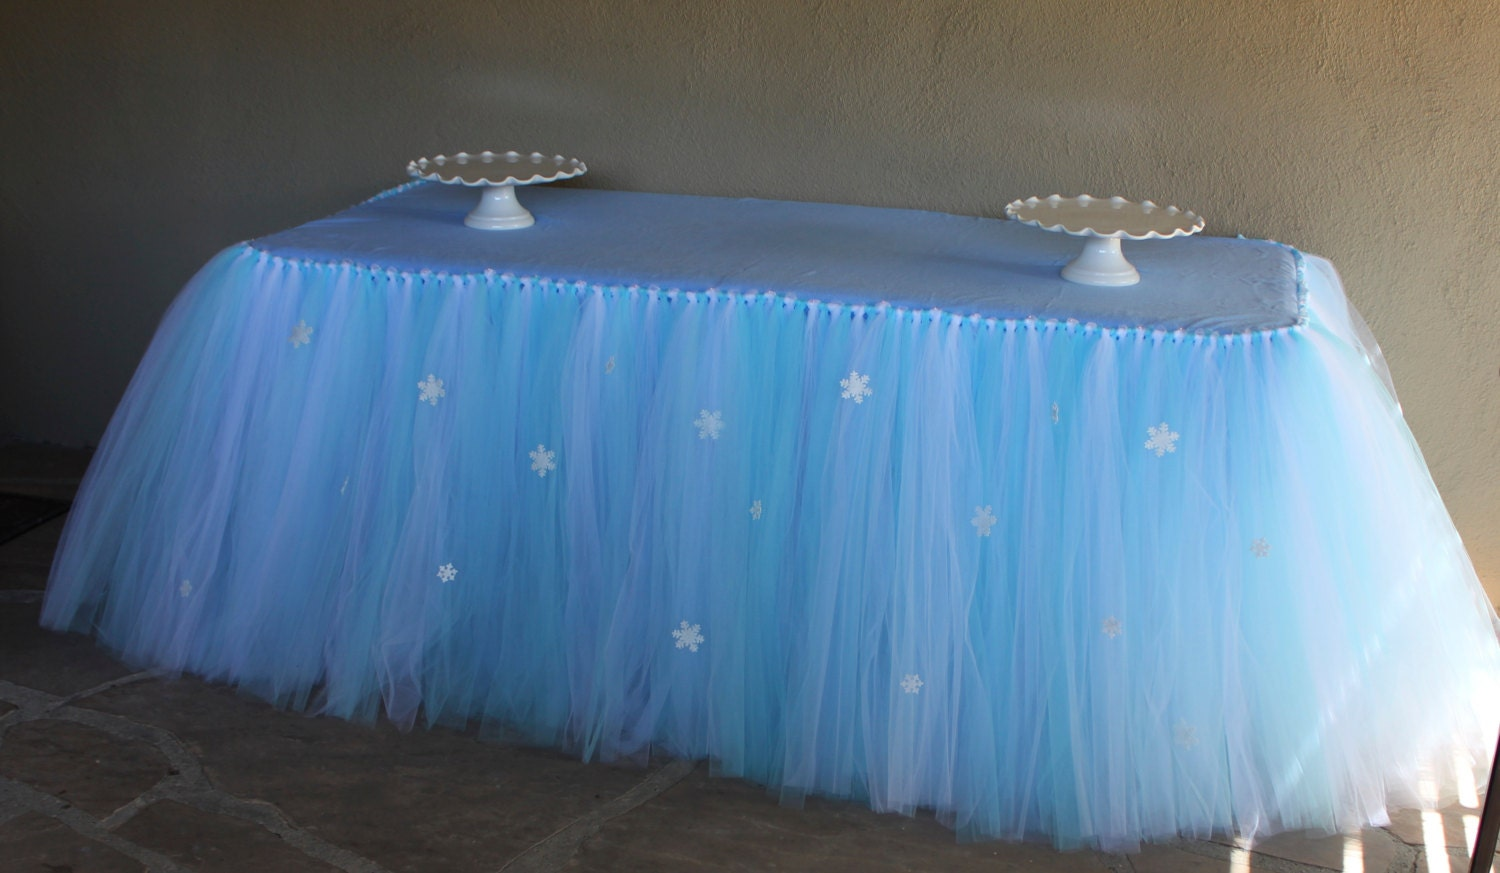 Buffet table skirting - Frozen Inspired Tutu Table Skirt Frozen Party By Piamiaboutique